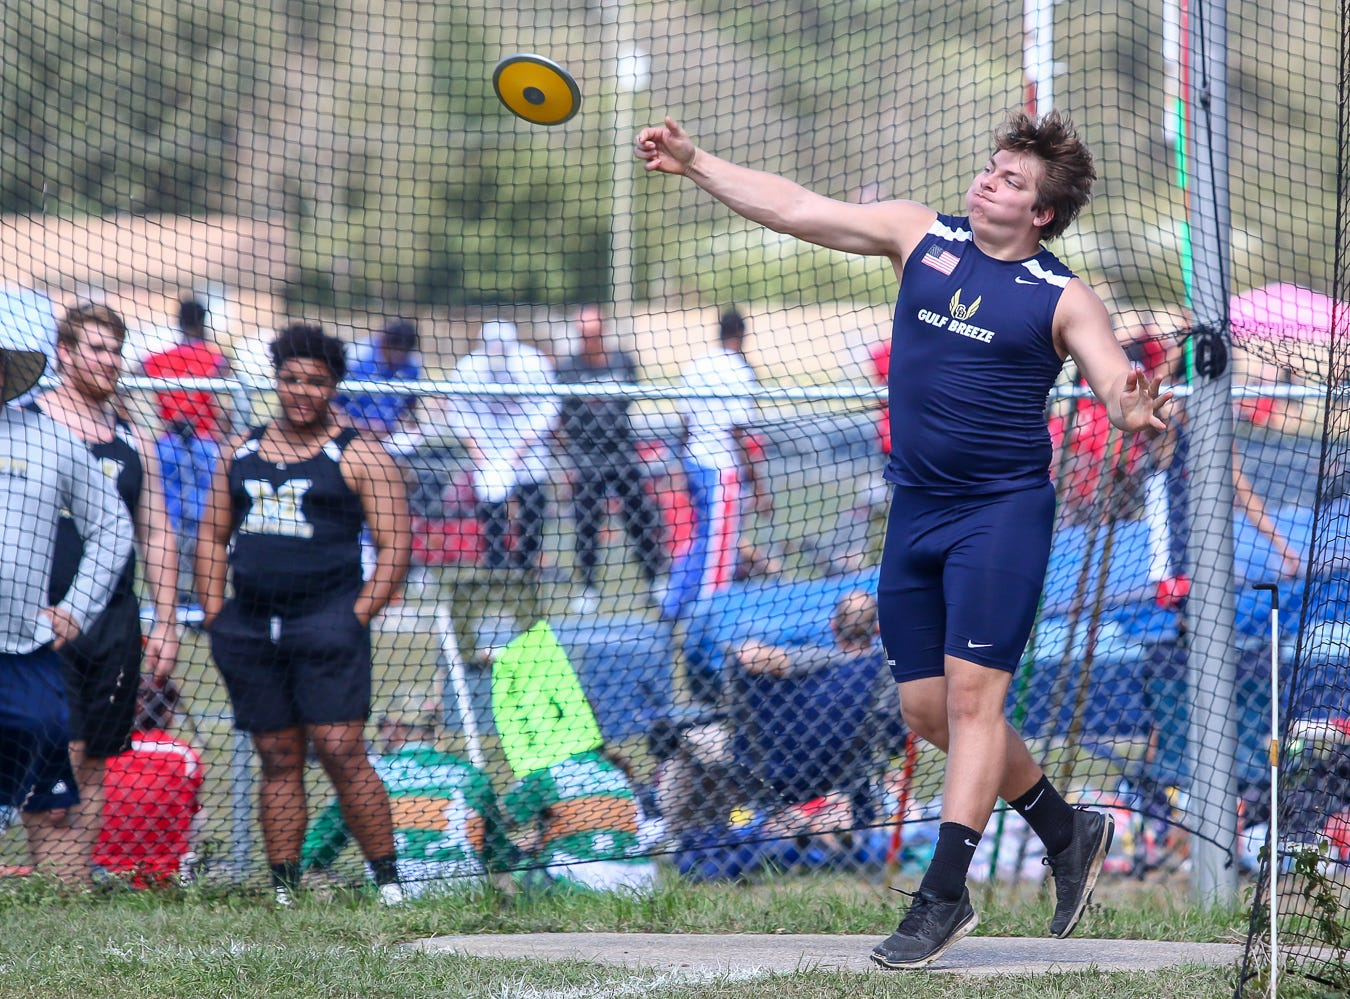 Gulf Breeze's Joel Gasten competes in the discus throw on Saturday, March 9, 2019, during the Aggie Invitational at Washington High School.